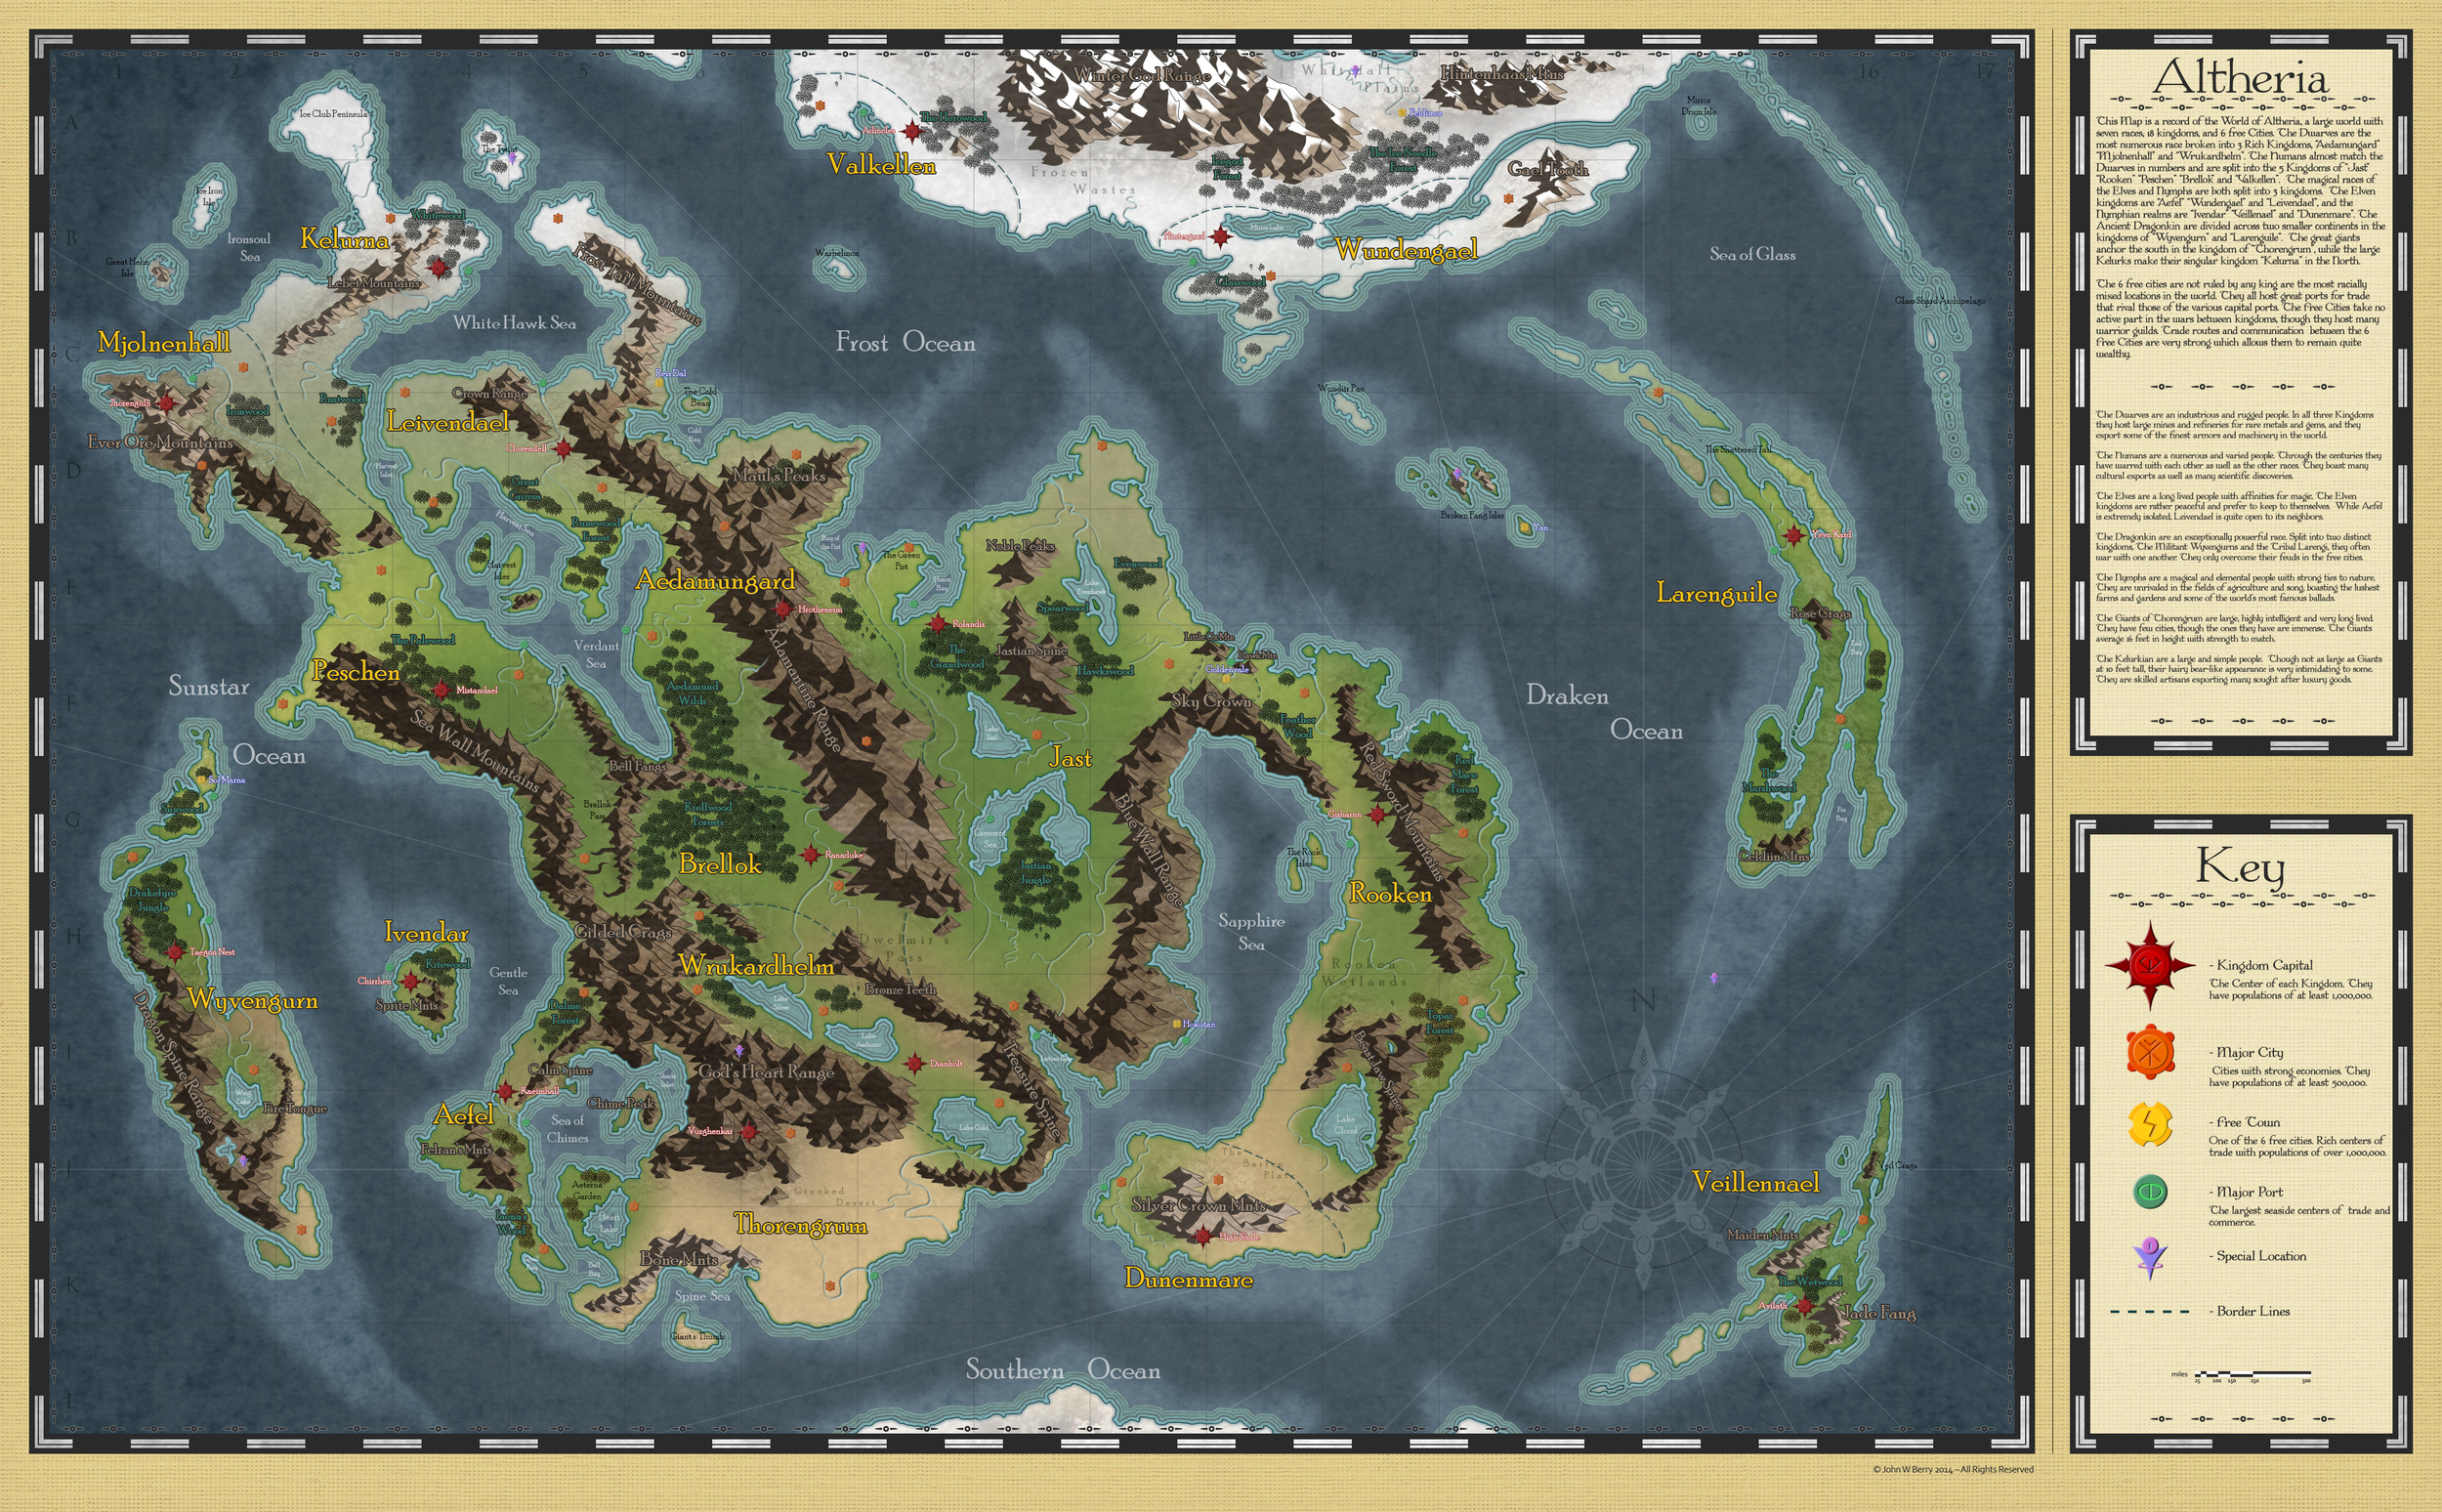 Map of Altheria